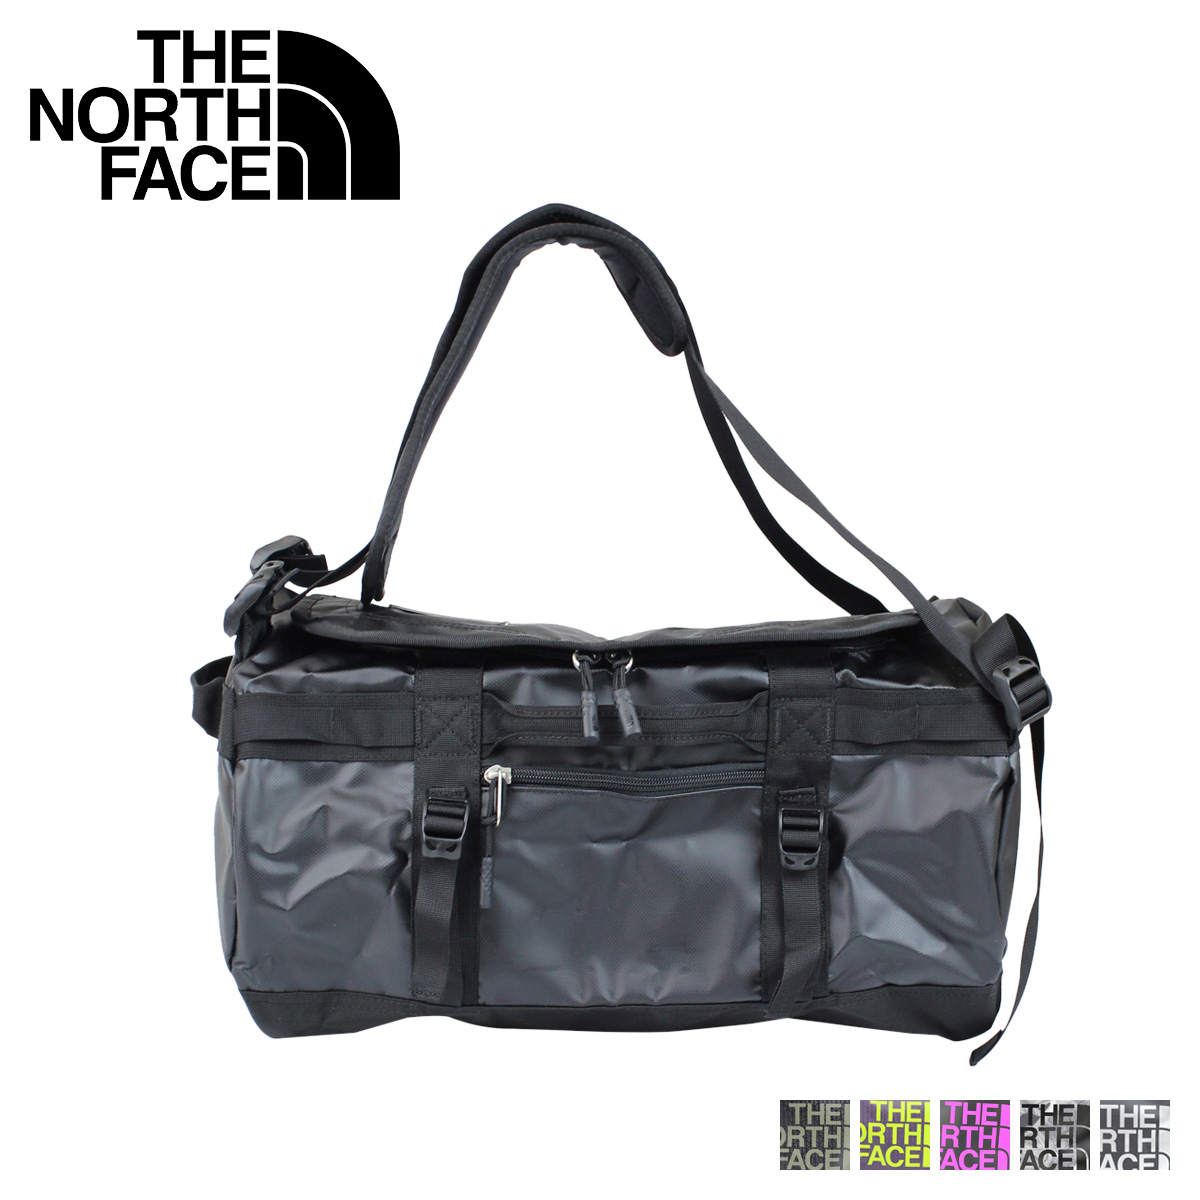 deba758f8d0 ALLSPORTS   laquo Soon raquo   laquo 10 7 days stock raquo  north face THE  NORTH FACE mens Womens duffle bags bag CWW4 33L 5 color BASE CAMP DUFFEL-XS   10 7 ...